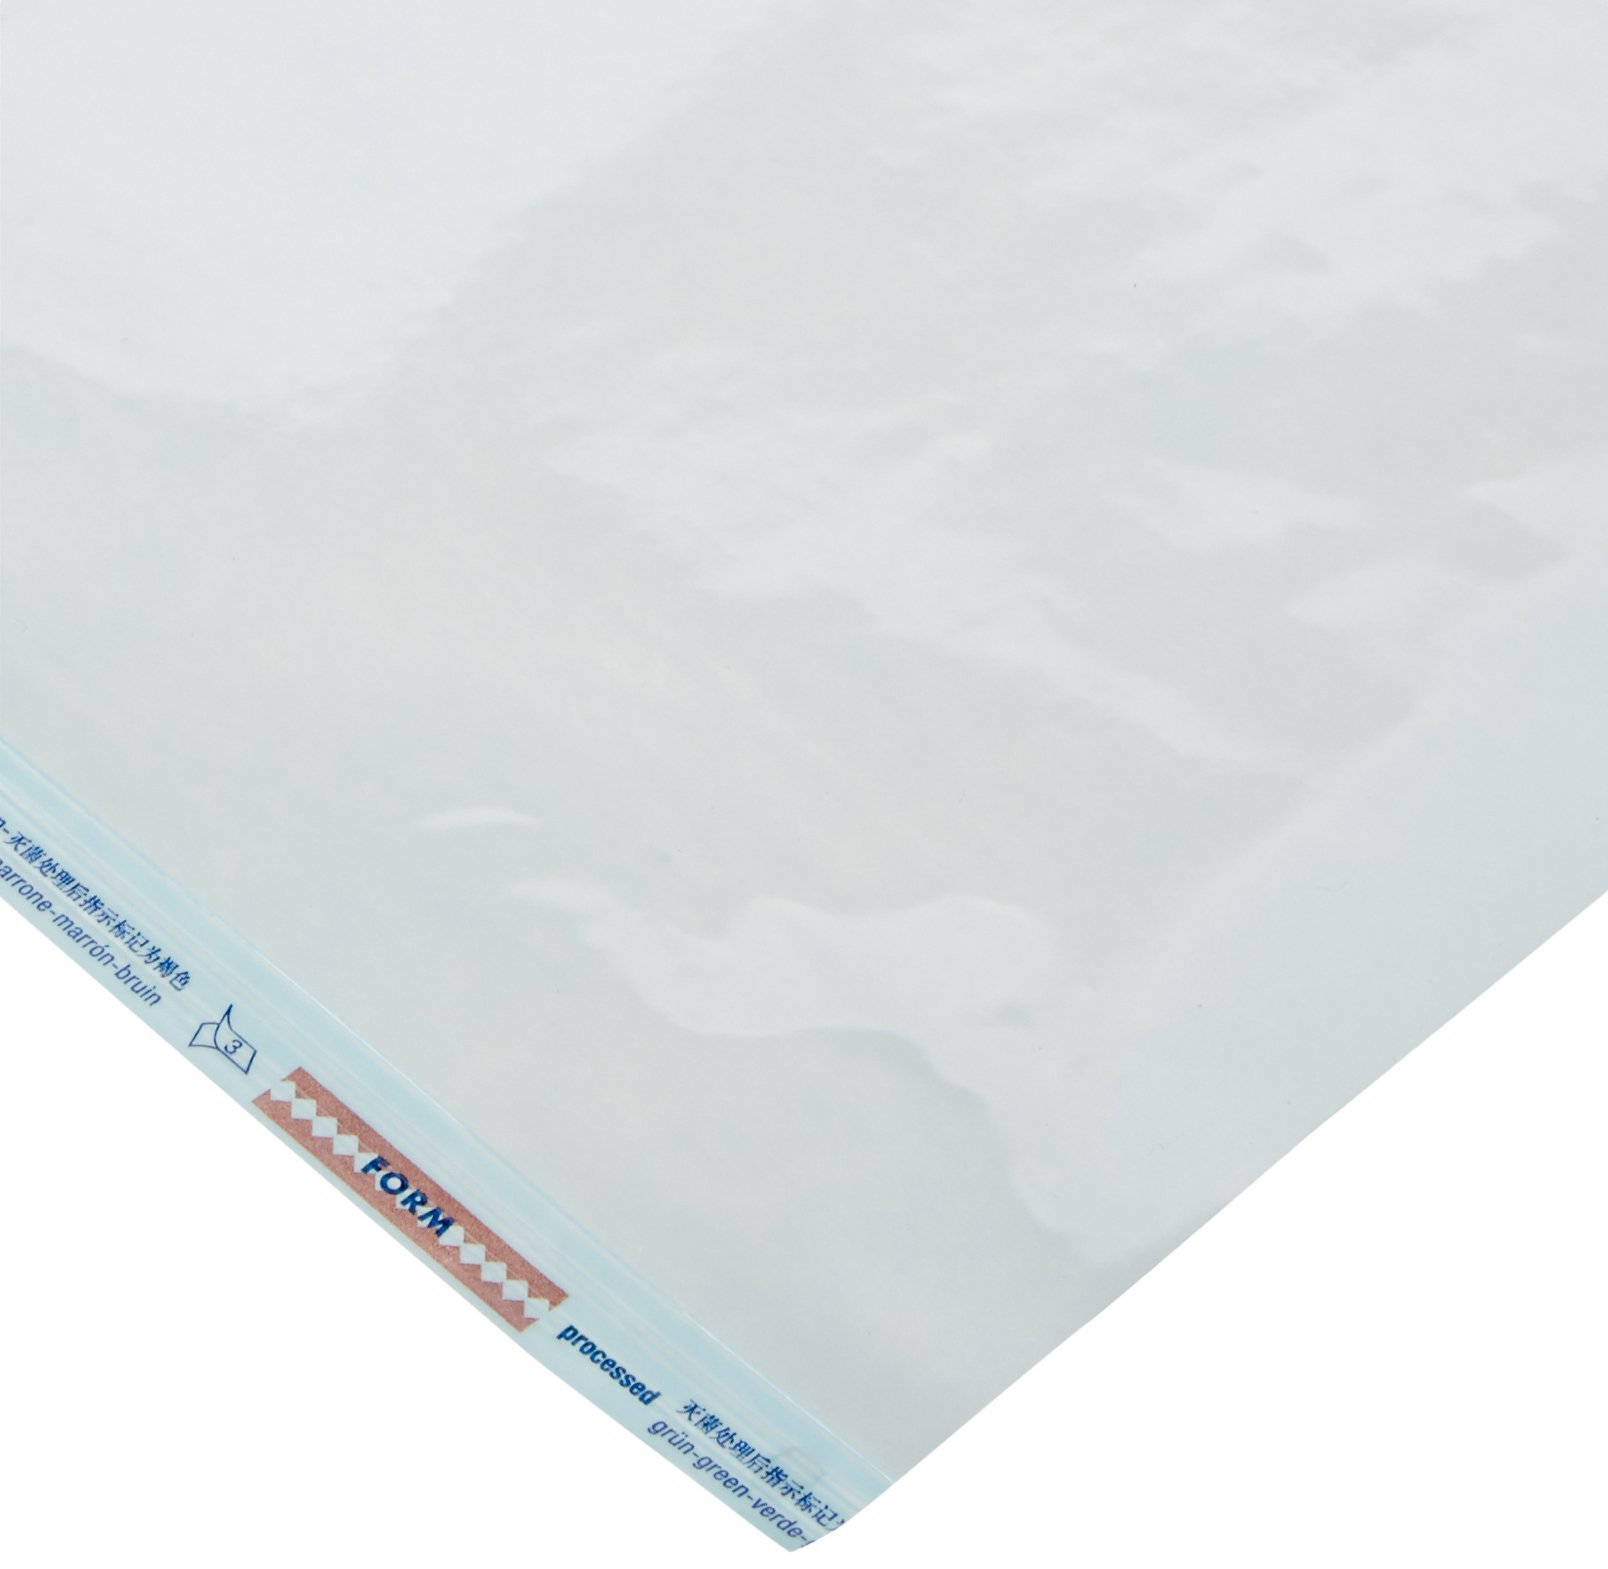 Whatman 10445868 Autocalving Bag for MBS I Plastic Funnel (Pack of 20)